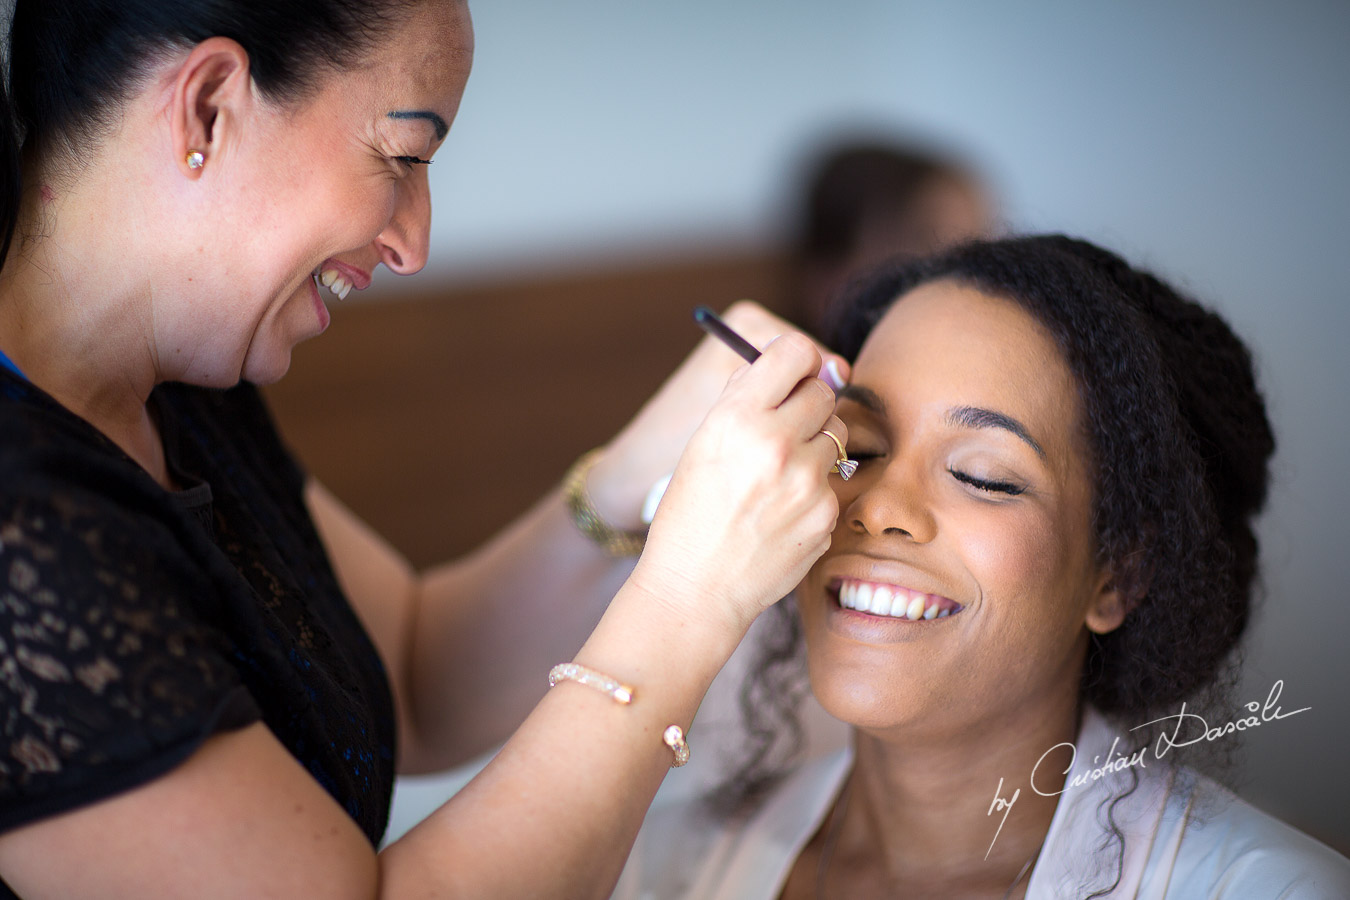 Unique moments captured during the make up for a wedding at Minthis Hills in Cyprus, by Cristian Dascalu.